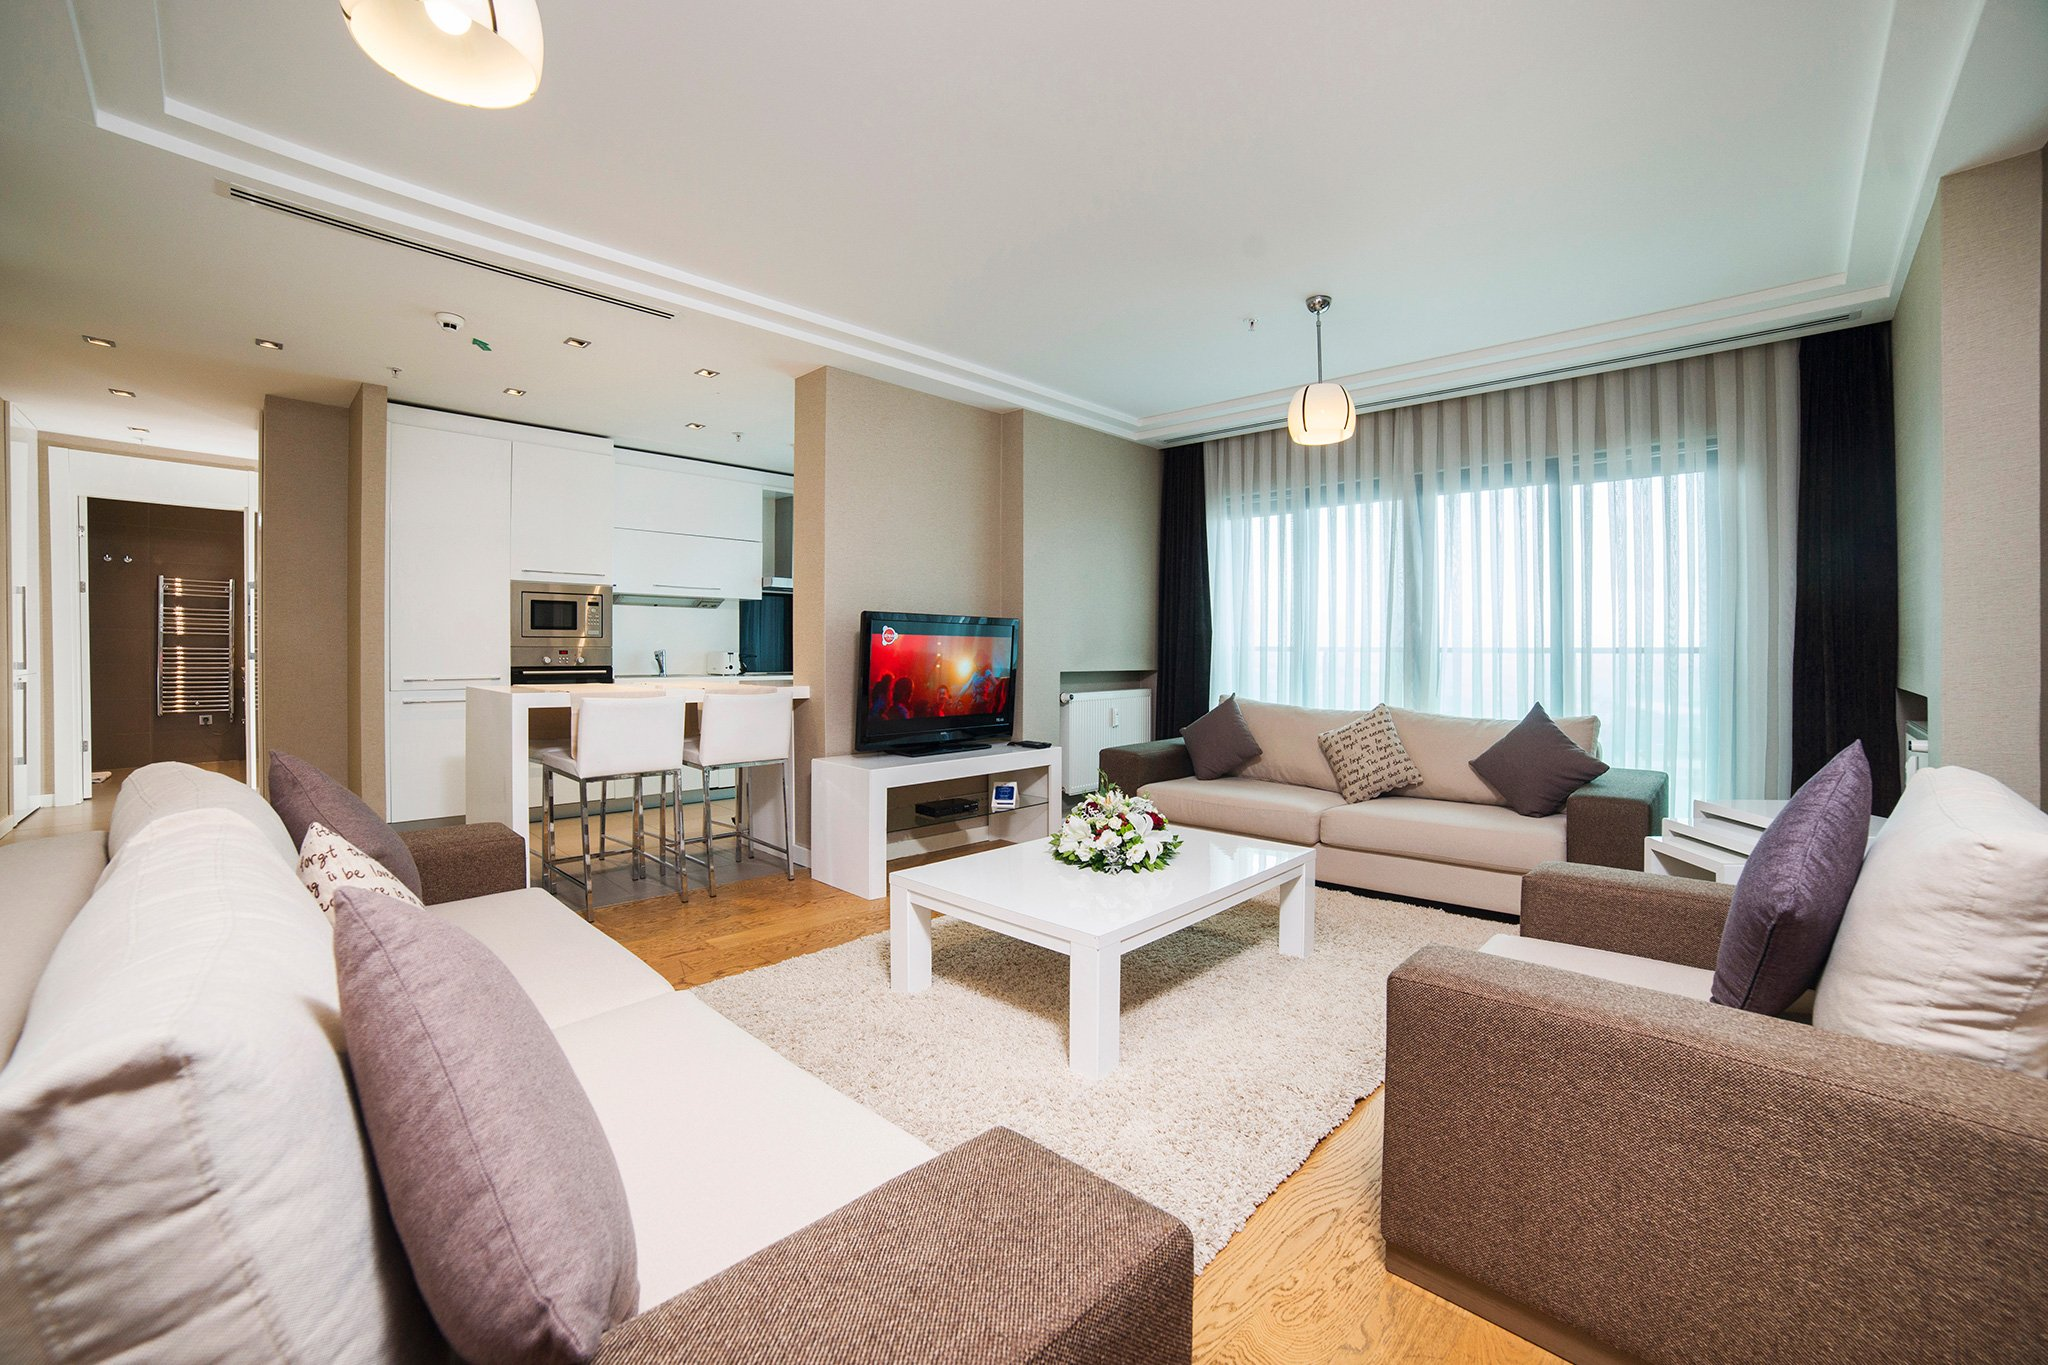 Radisson Signs Deal For Serviced Apartments In Turkey